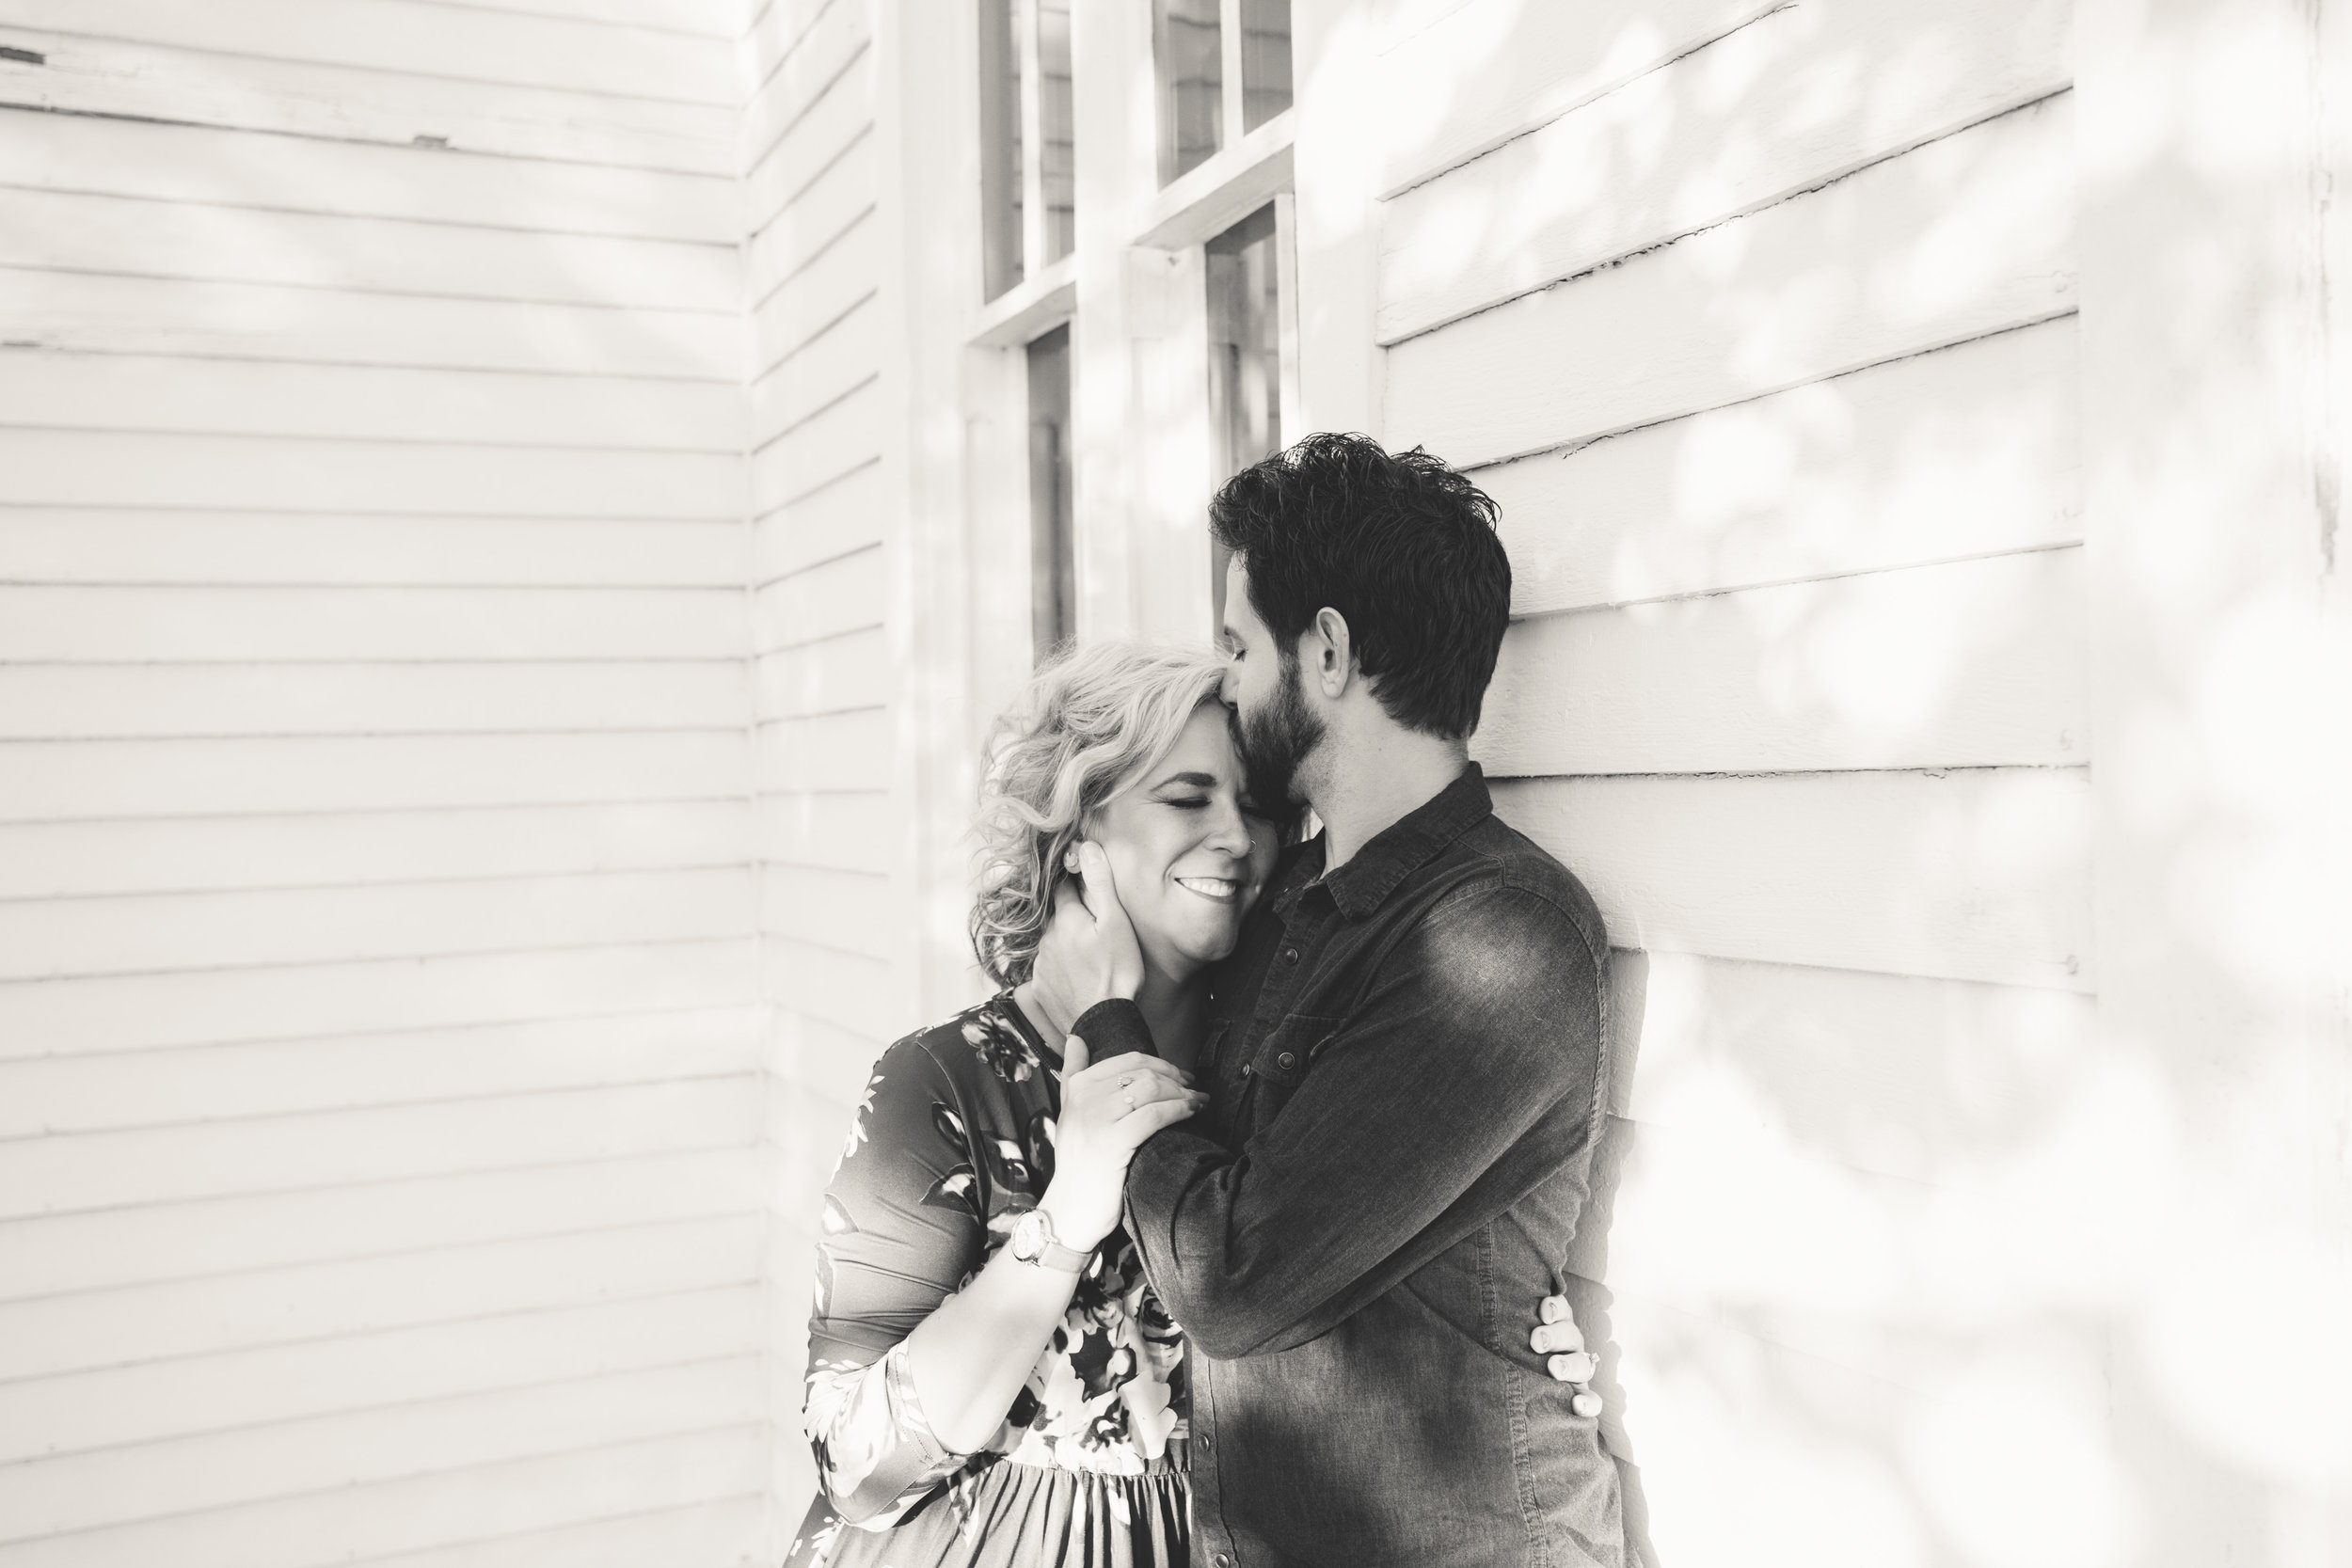 charltonpark_engagementsession_grandrapidsphotographer_grandrapids_hastings_michiganwedding_fallengagement_fallwedding_jdarlingphoto_jessicadarling_westmichiganphotographer_wedding_fall_rusticwedding  015.jpg